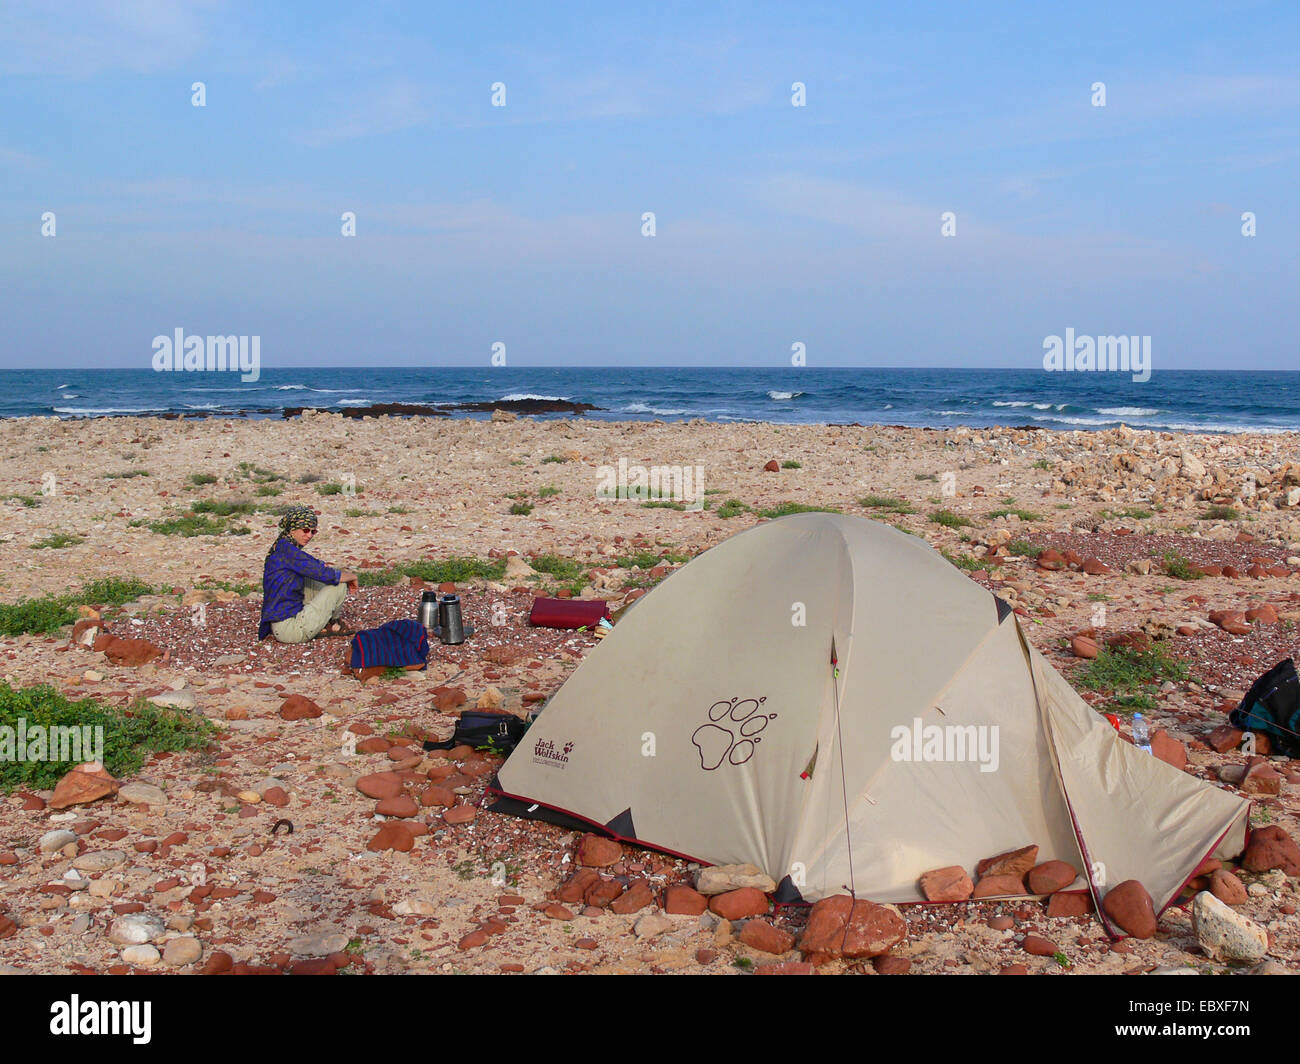 women with tent at the coast, Yemen, Socotra - Stock Image